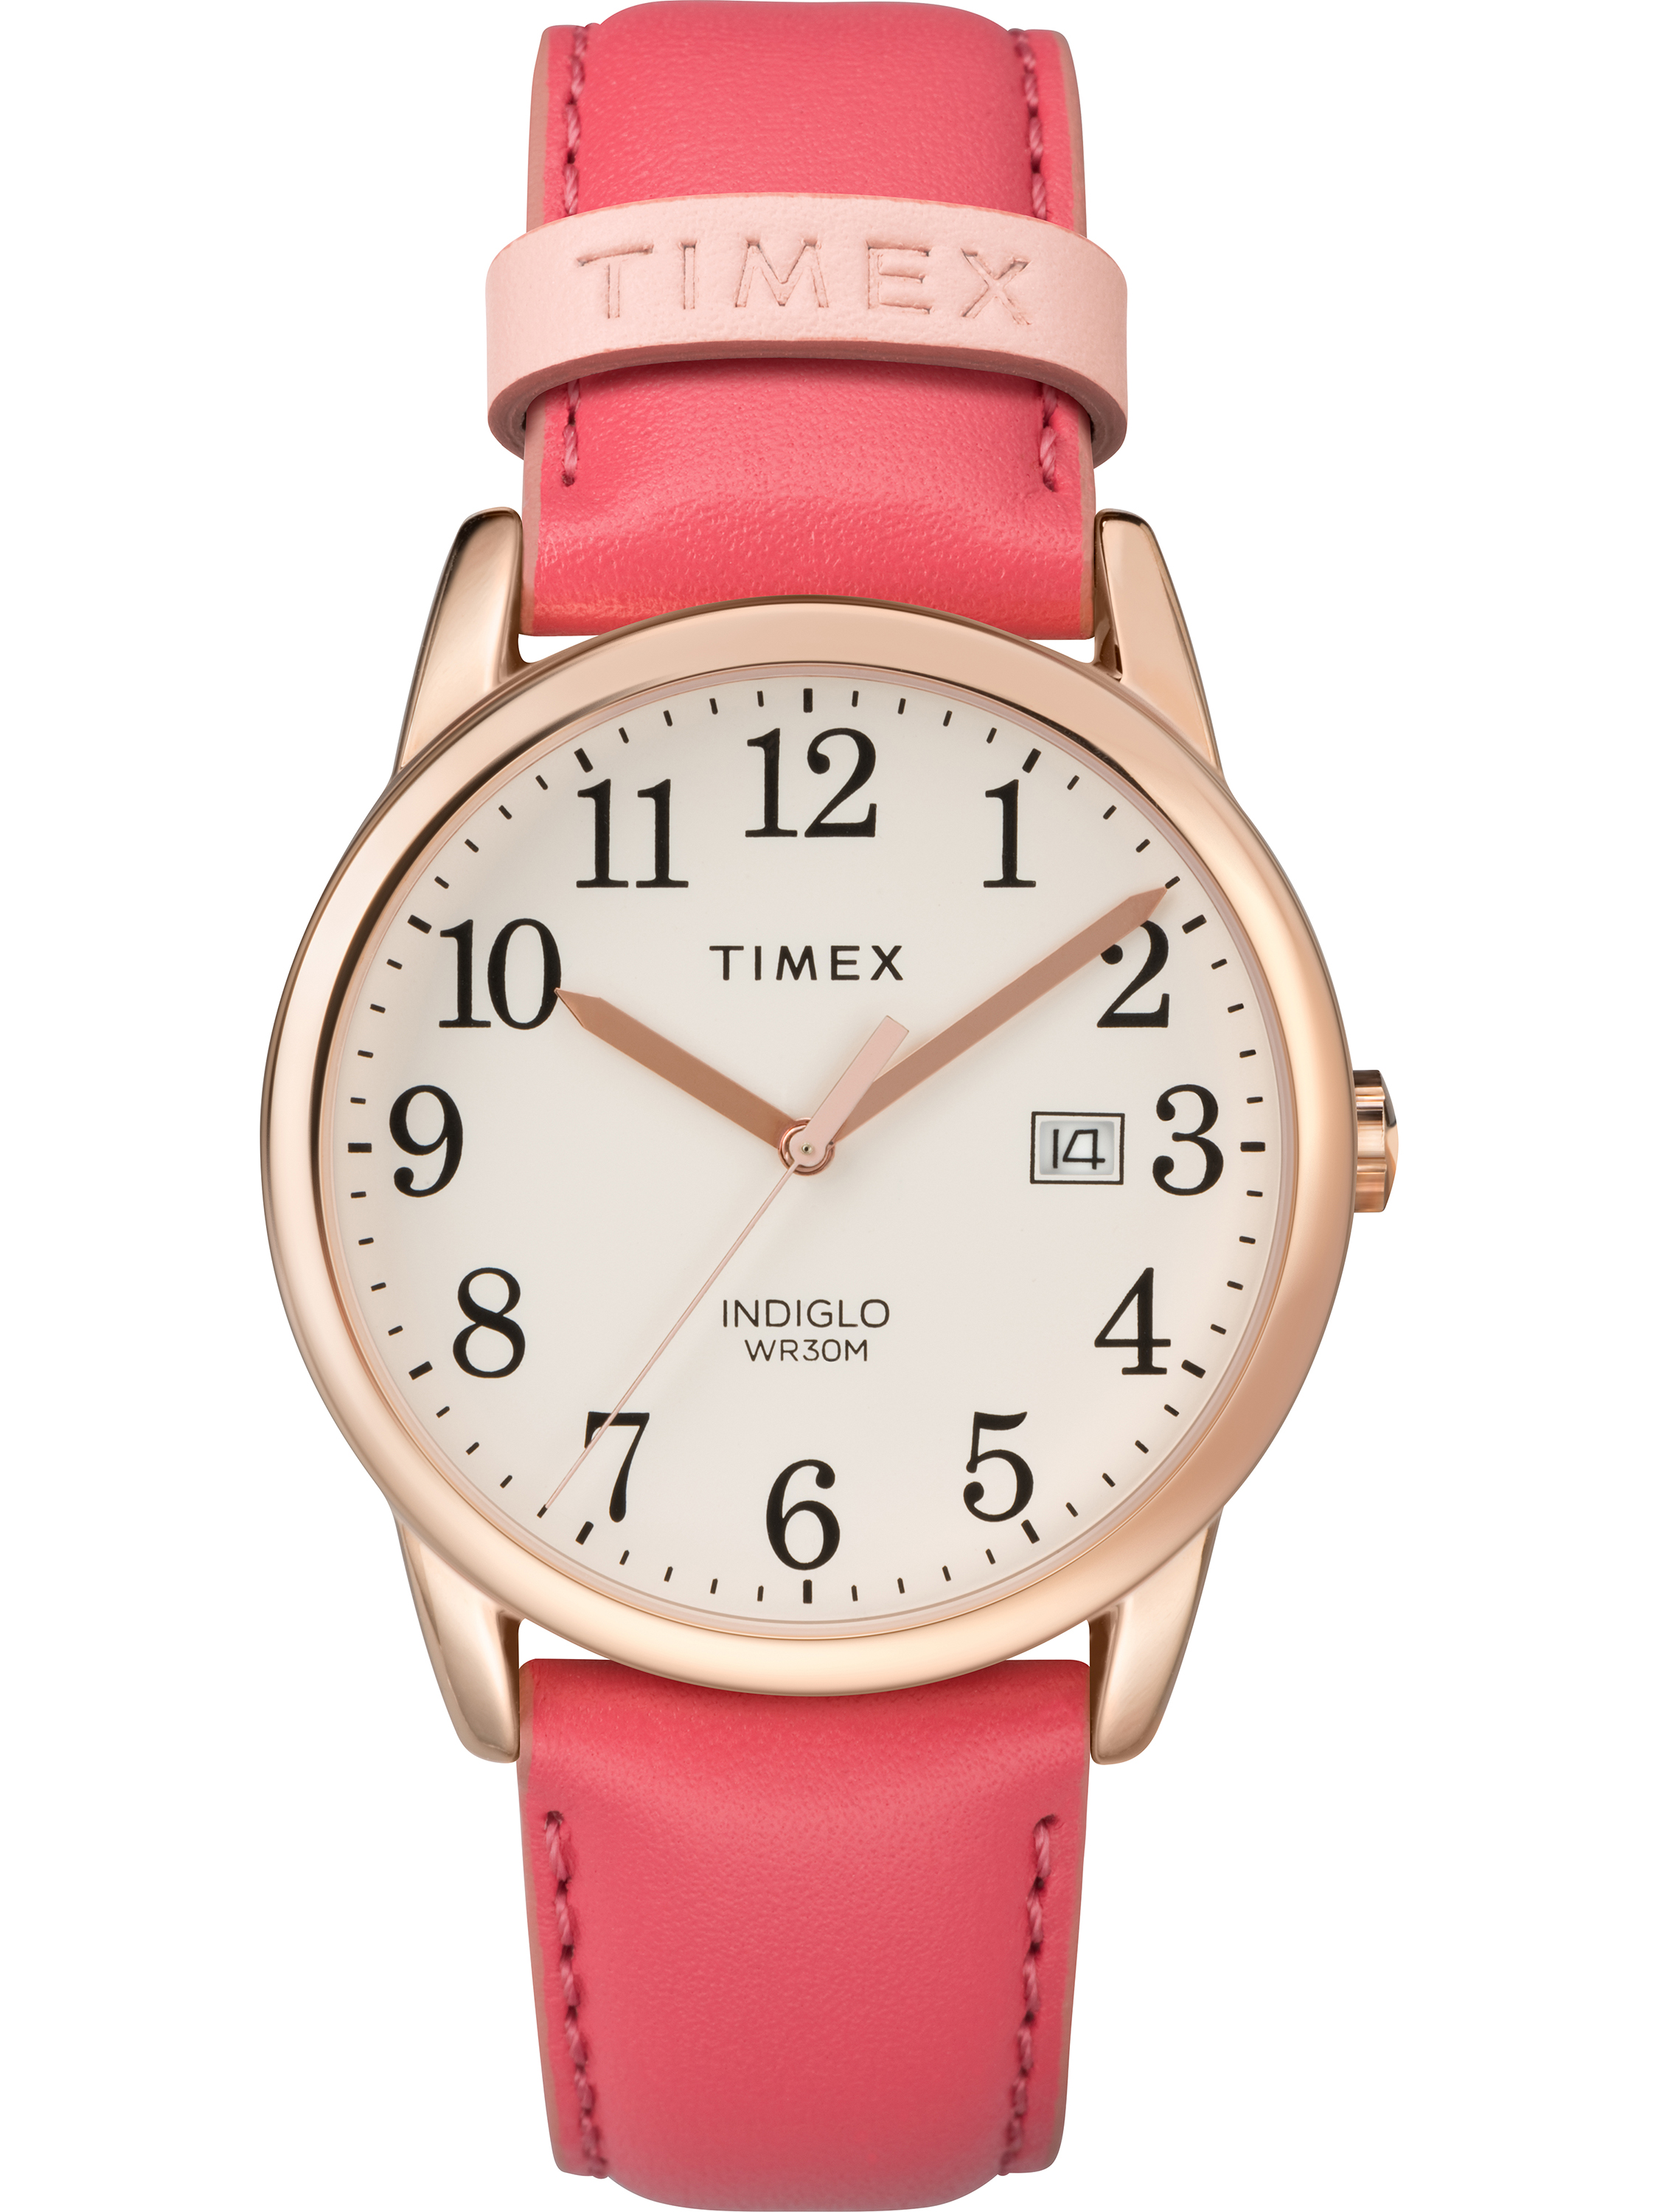 Leather Strap Rose Gold Watch Women S Easy Reader Pink Rose Gold Tone Watch Leather Strap